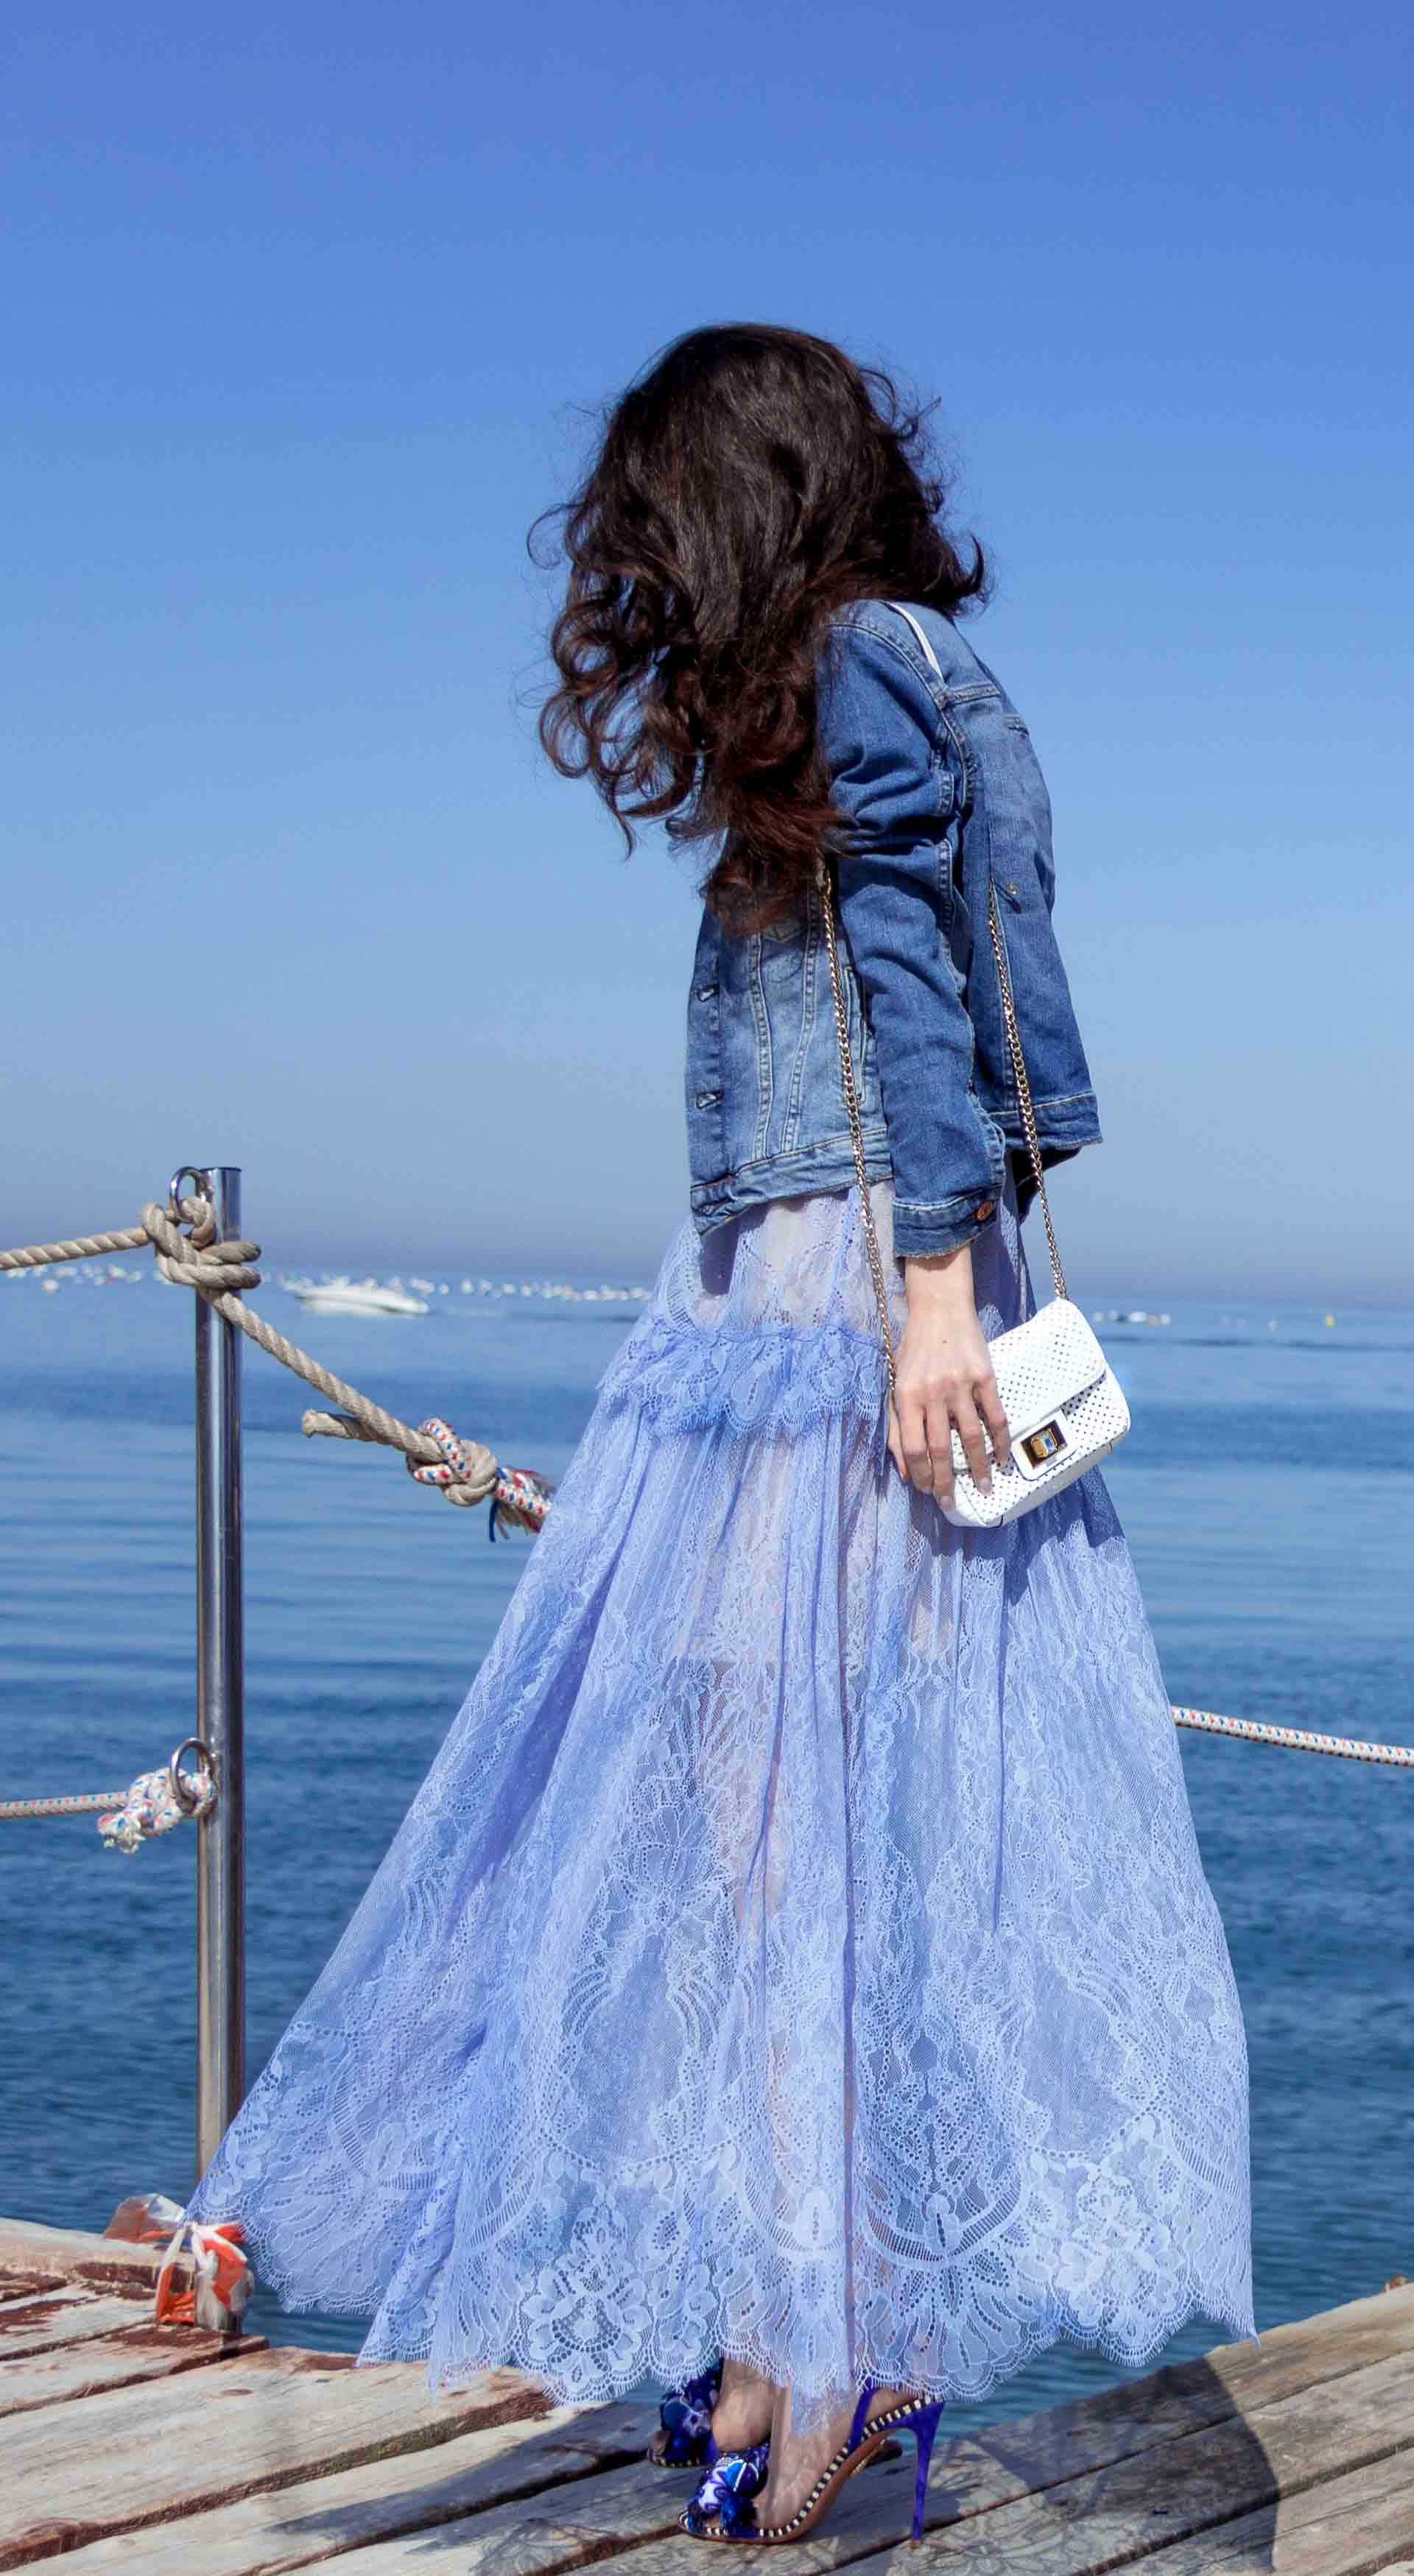 Veronika Lipar Fashion Blogger of Brunette from Wall Street dressed in blue off the shoulder midi lace dress from Self-Portrait, H&M blue denim jacket, white chain shoulder bag, Aquazzura blue pom pom tassels sandals, white Lolita cat-eye sunglasses on a date at the seaside